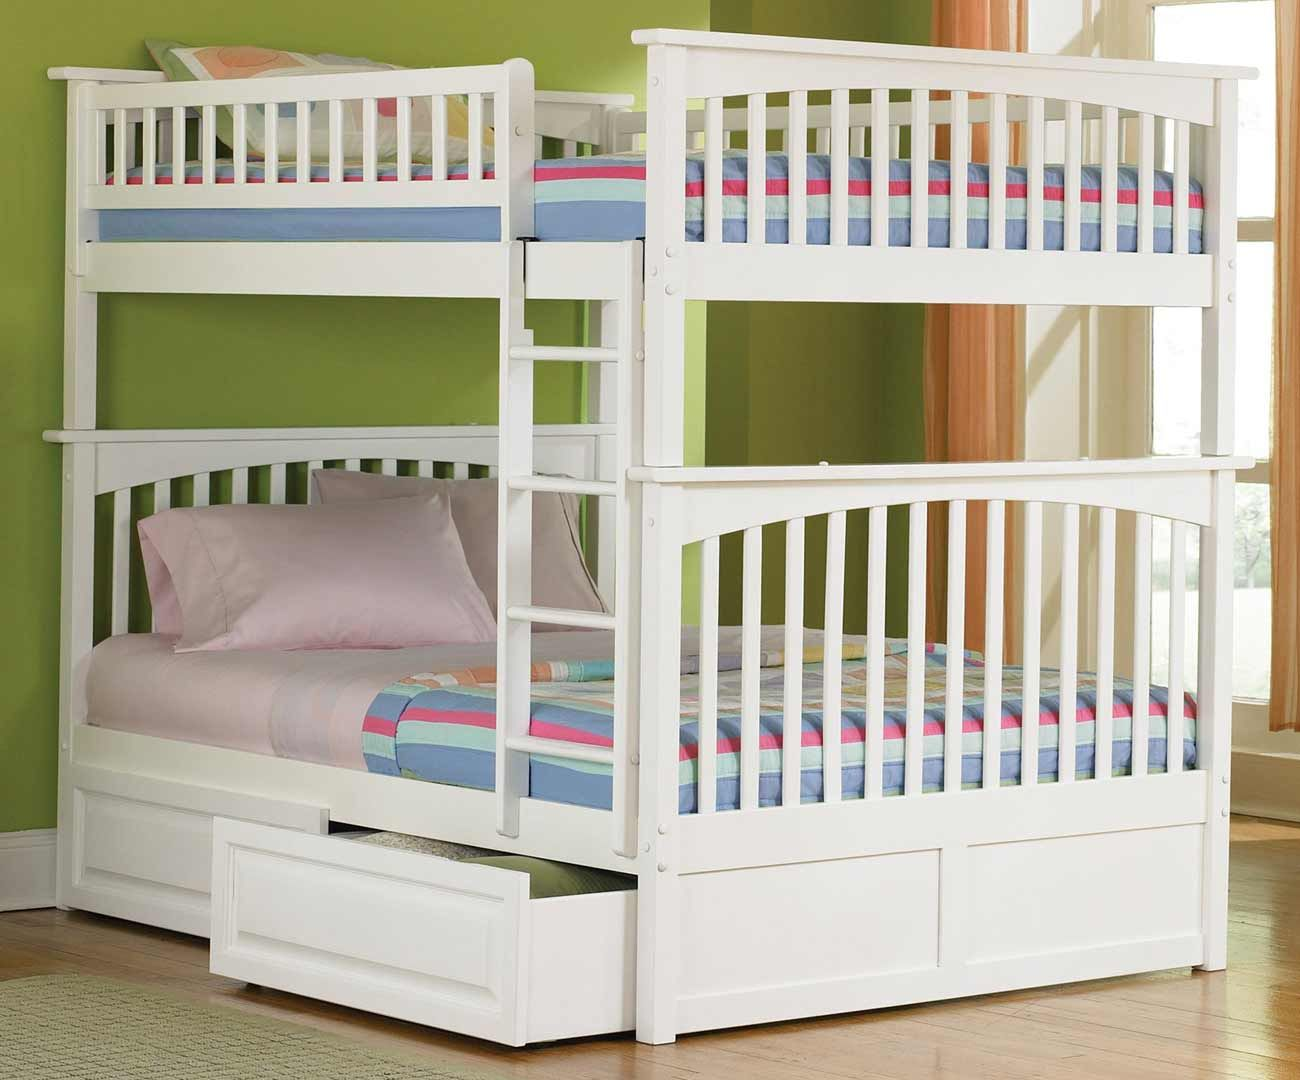 teen room ideas for girls with bunkbeds